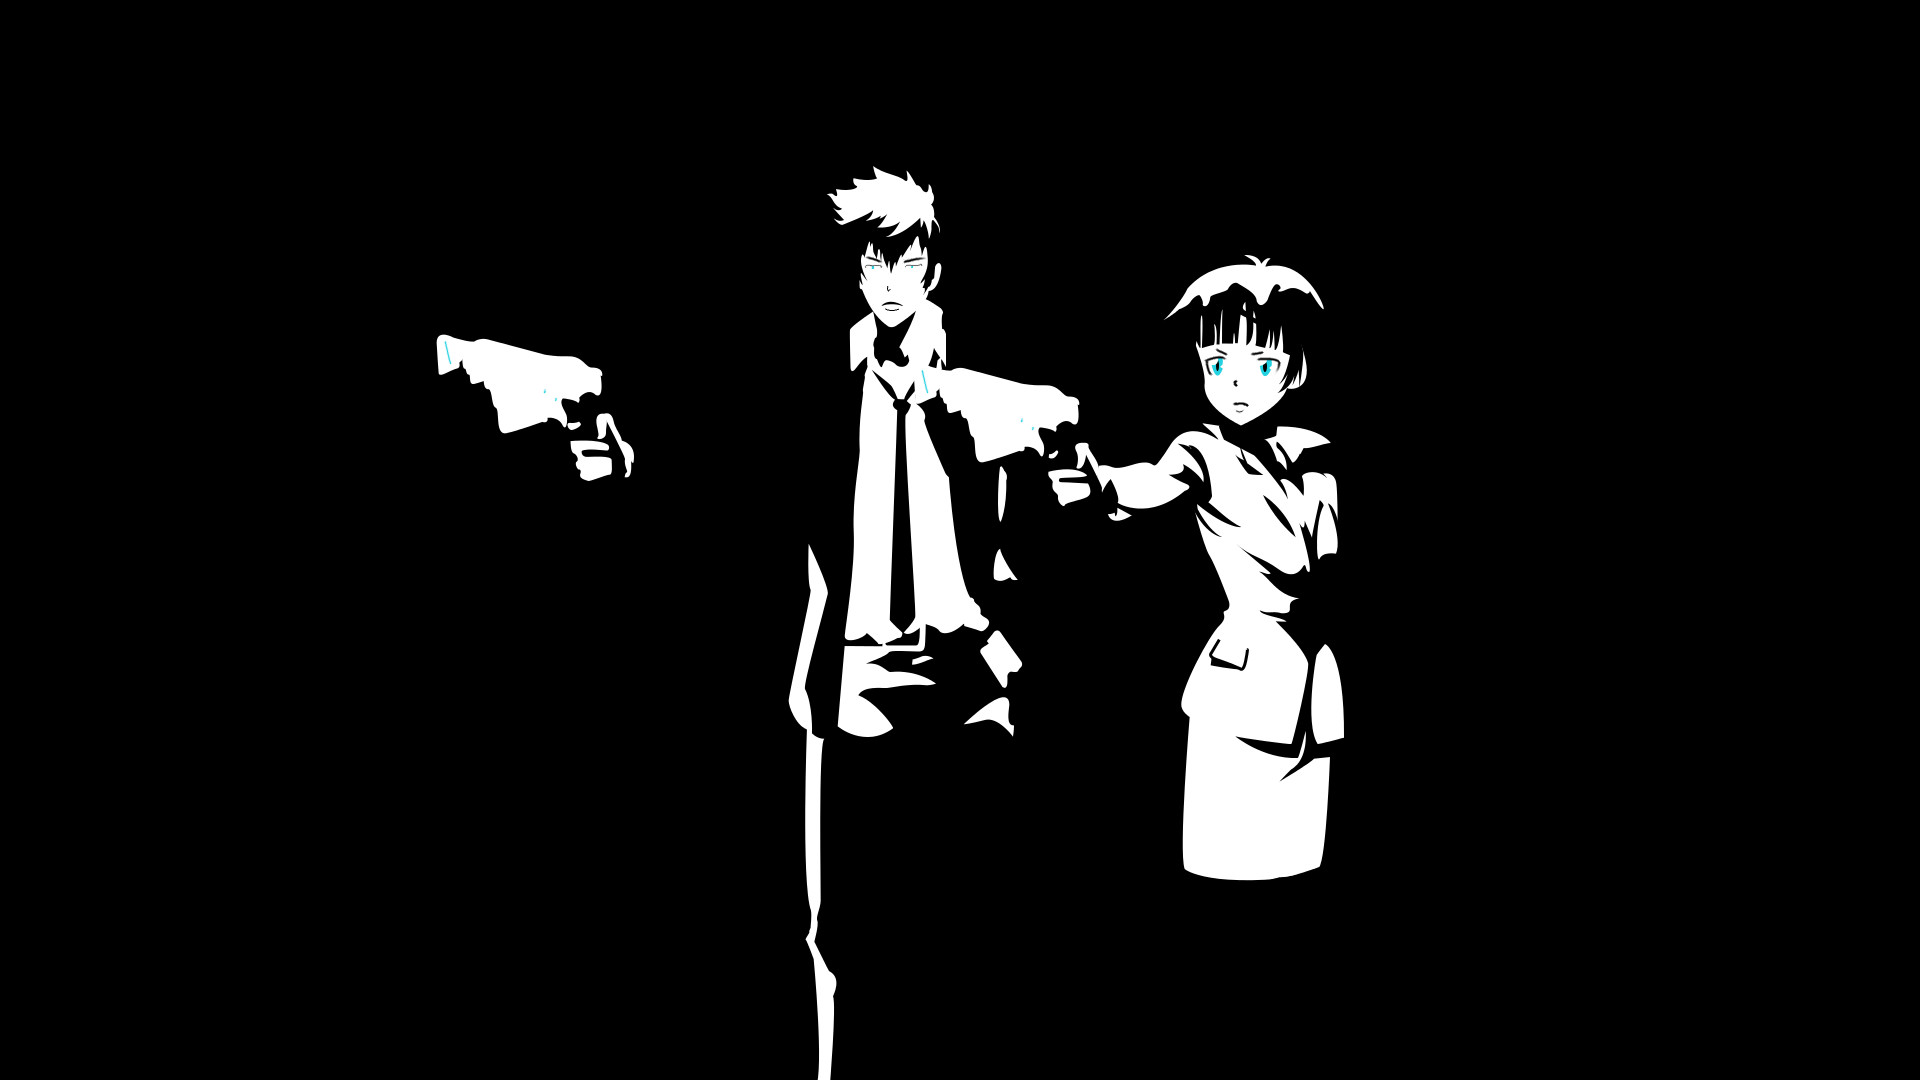 1920x1080 ... psycho p anime wallpapers hd 36 photos ...